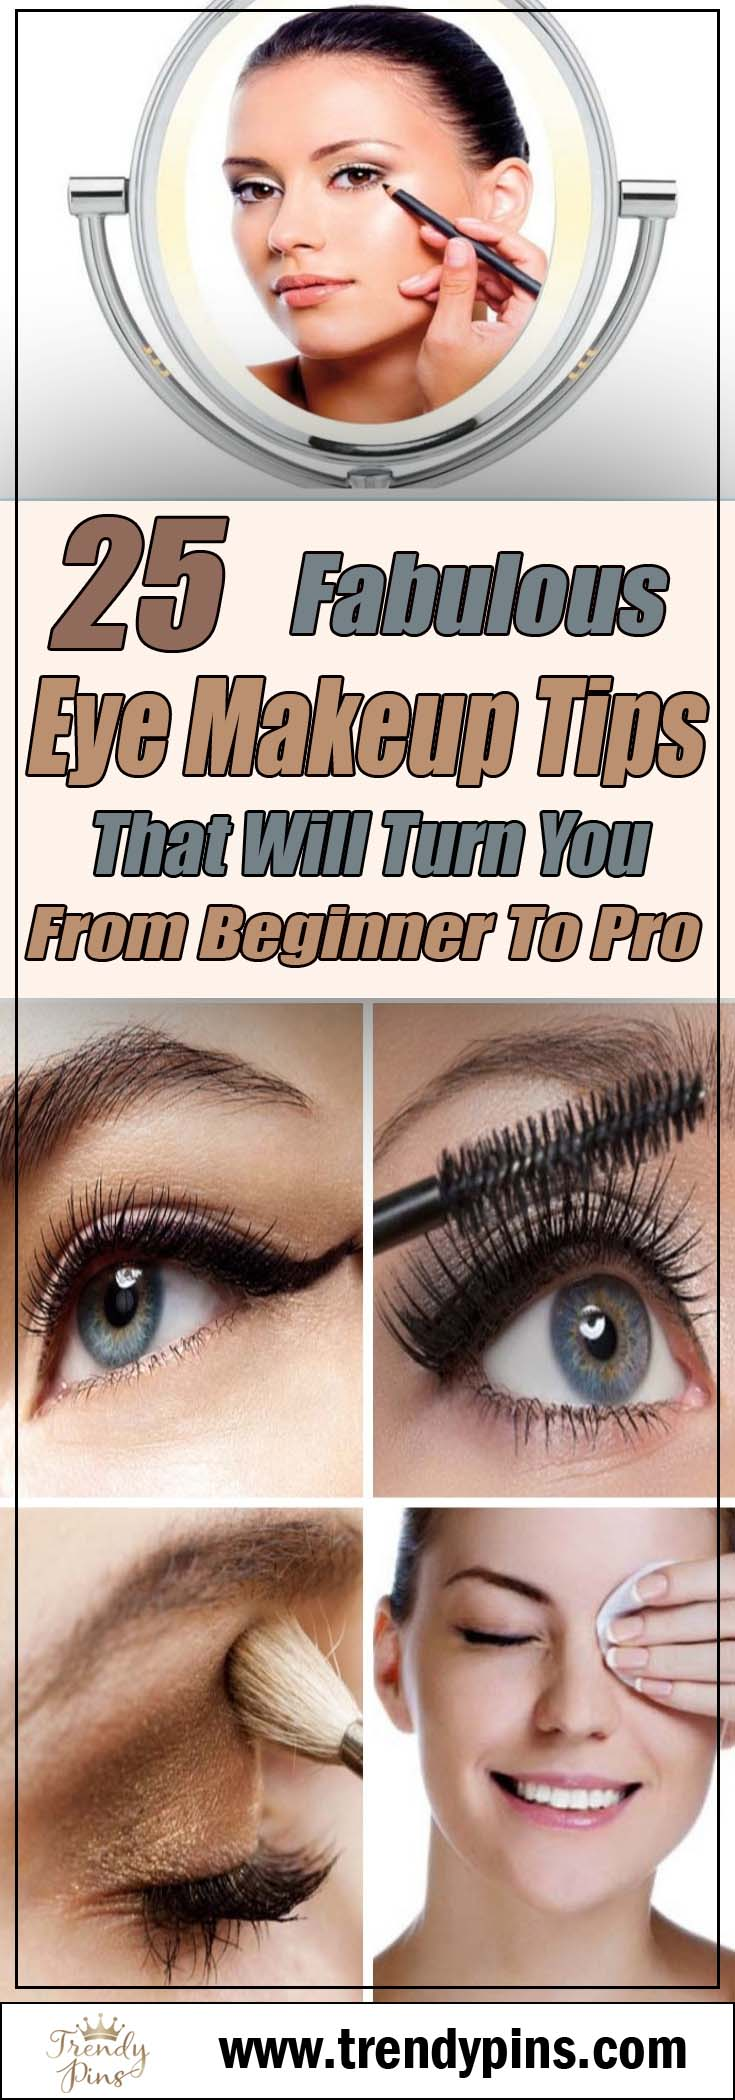 25 fabulous eye makeup tips that will turn you from beginner to pro #makeup #beauty #trendypins